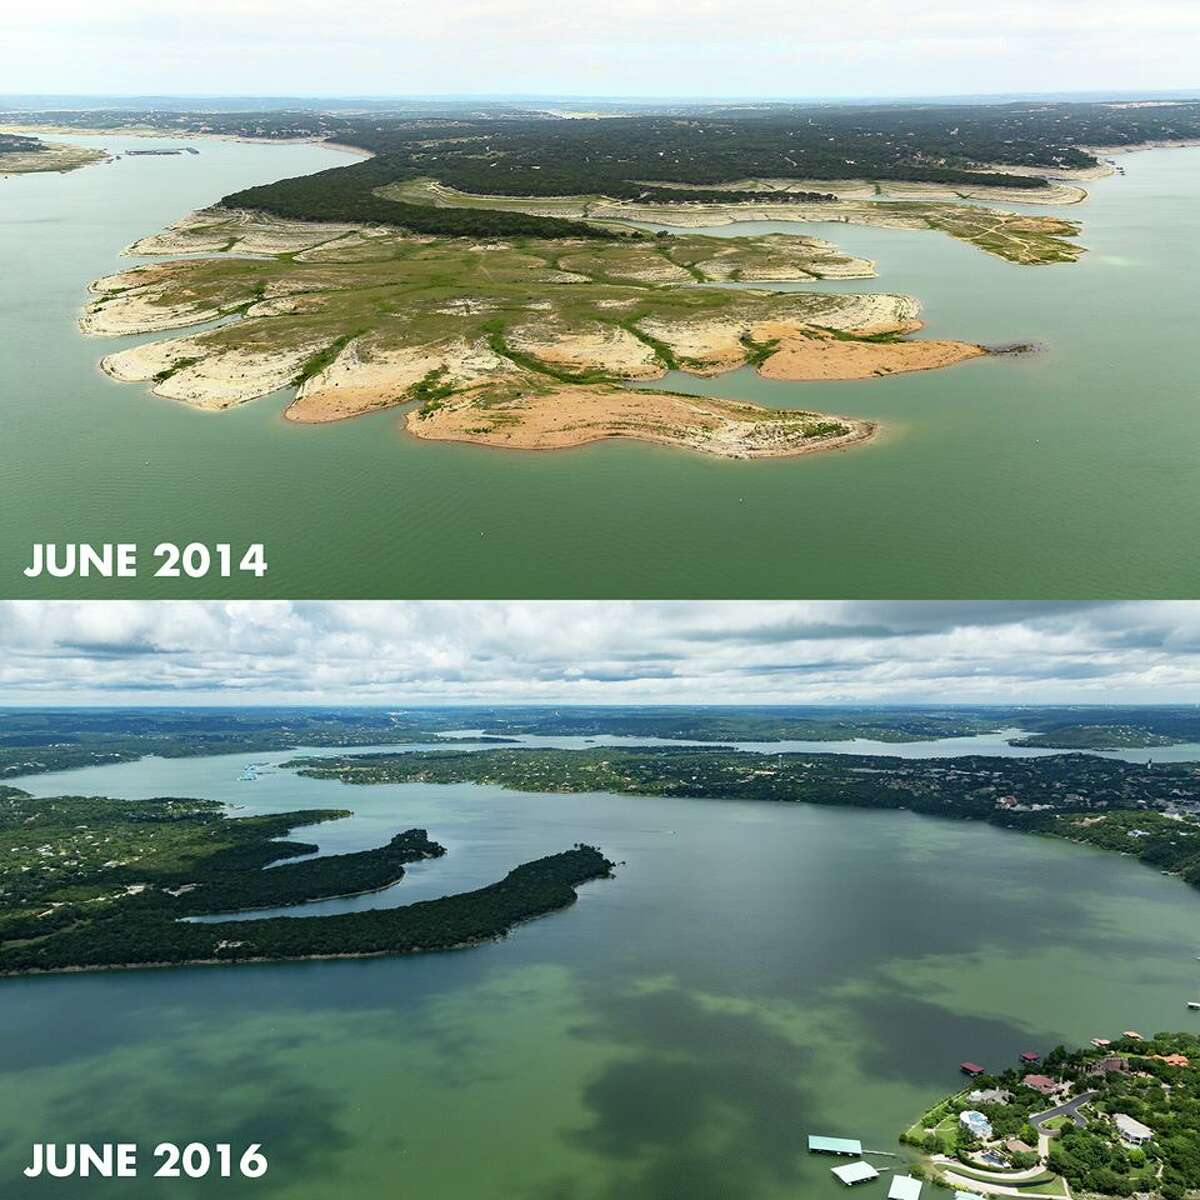 The Lower Colorado River Authority published two-year aerial progression shots showing Lake Travis' transformation on June 22, 2016.